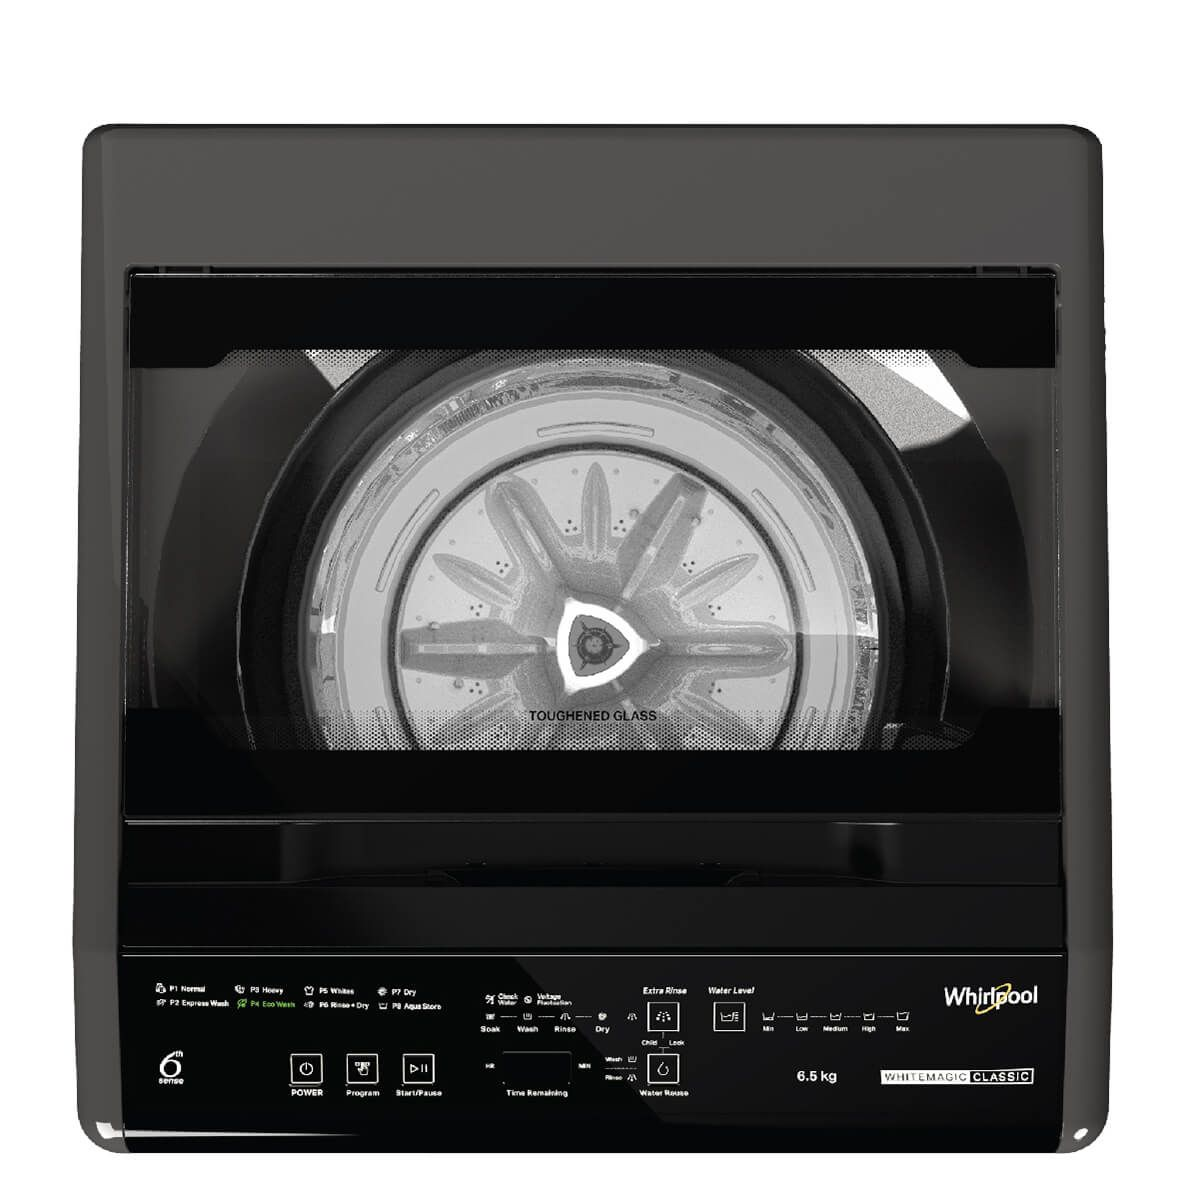 WHIRLPOOL WASHING MACHINE - WM CLASSIC 6.5 GENX GREY 10YMW